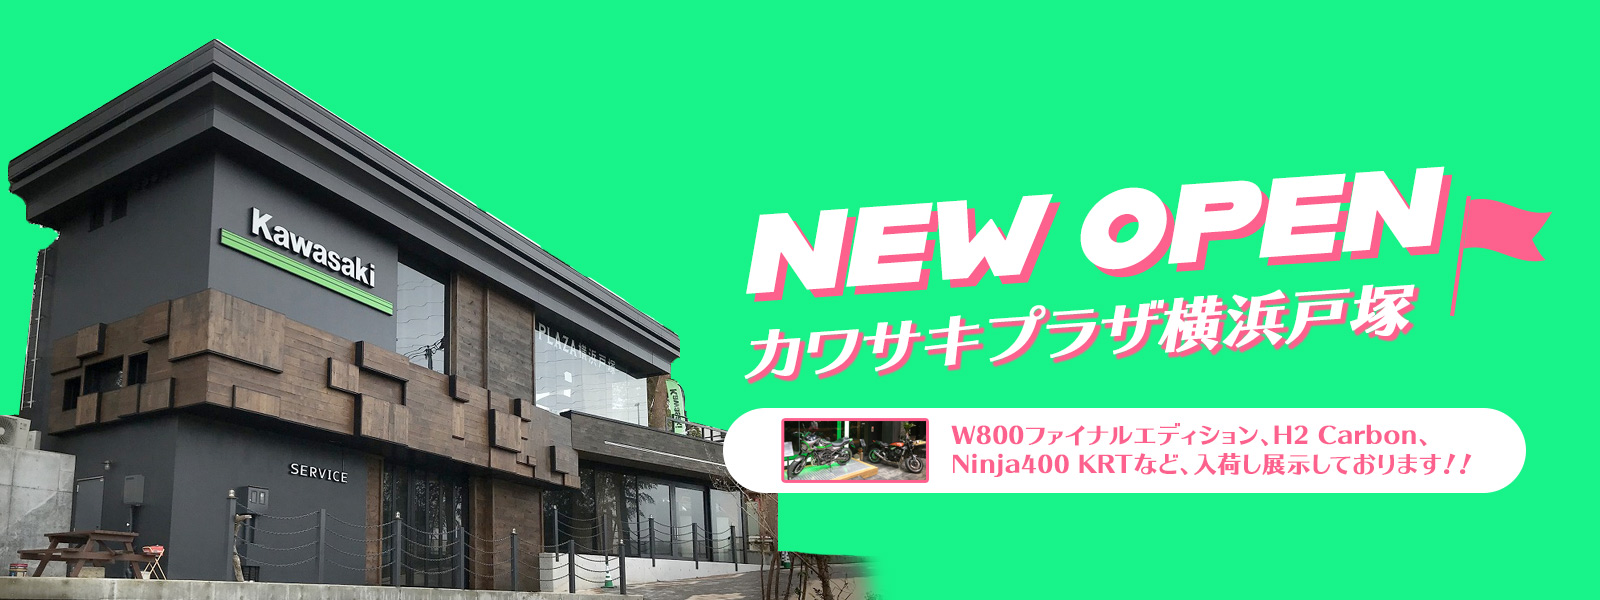 NEW OPEN カワサキプラザ横浜戸塚